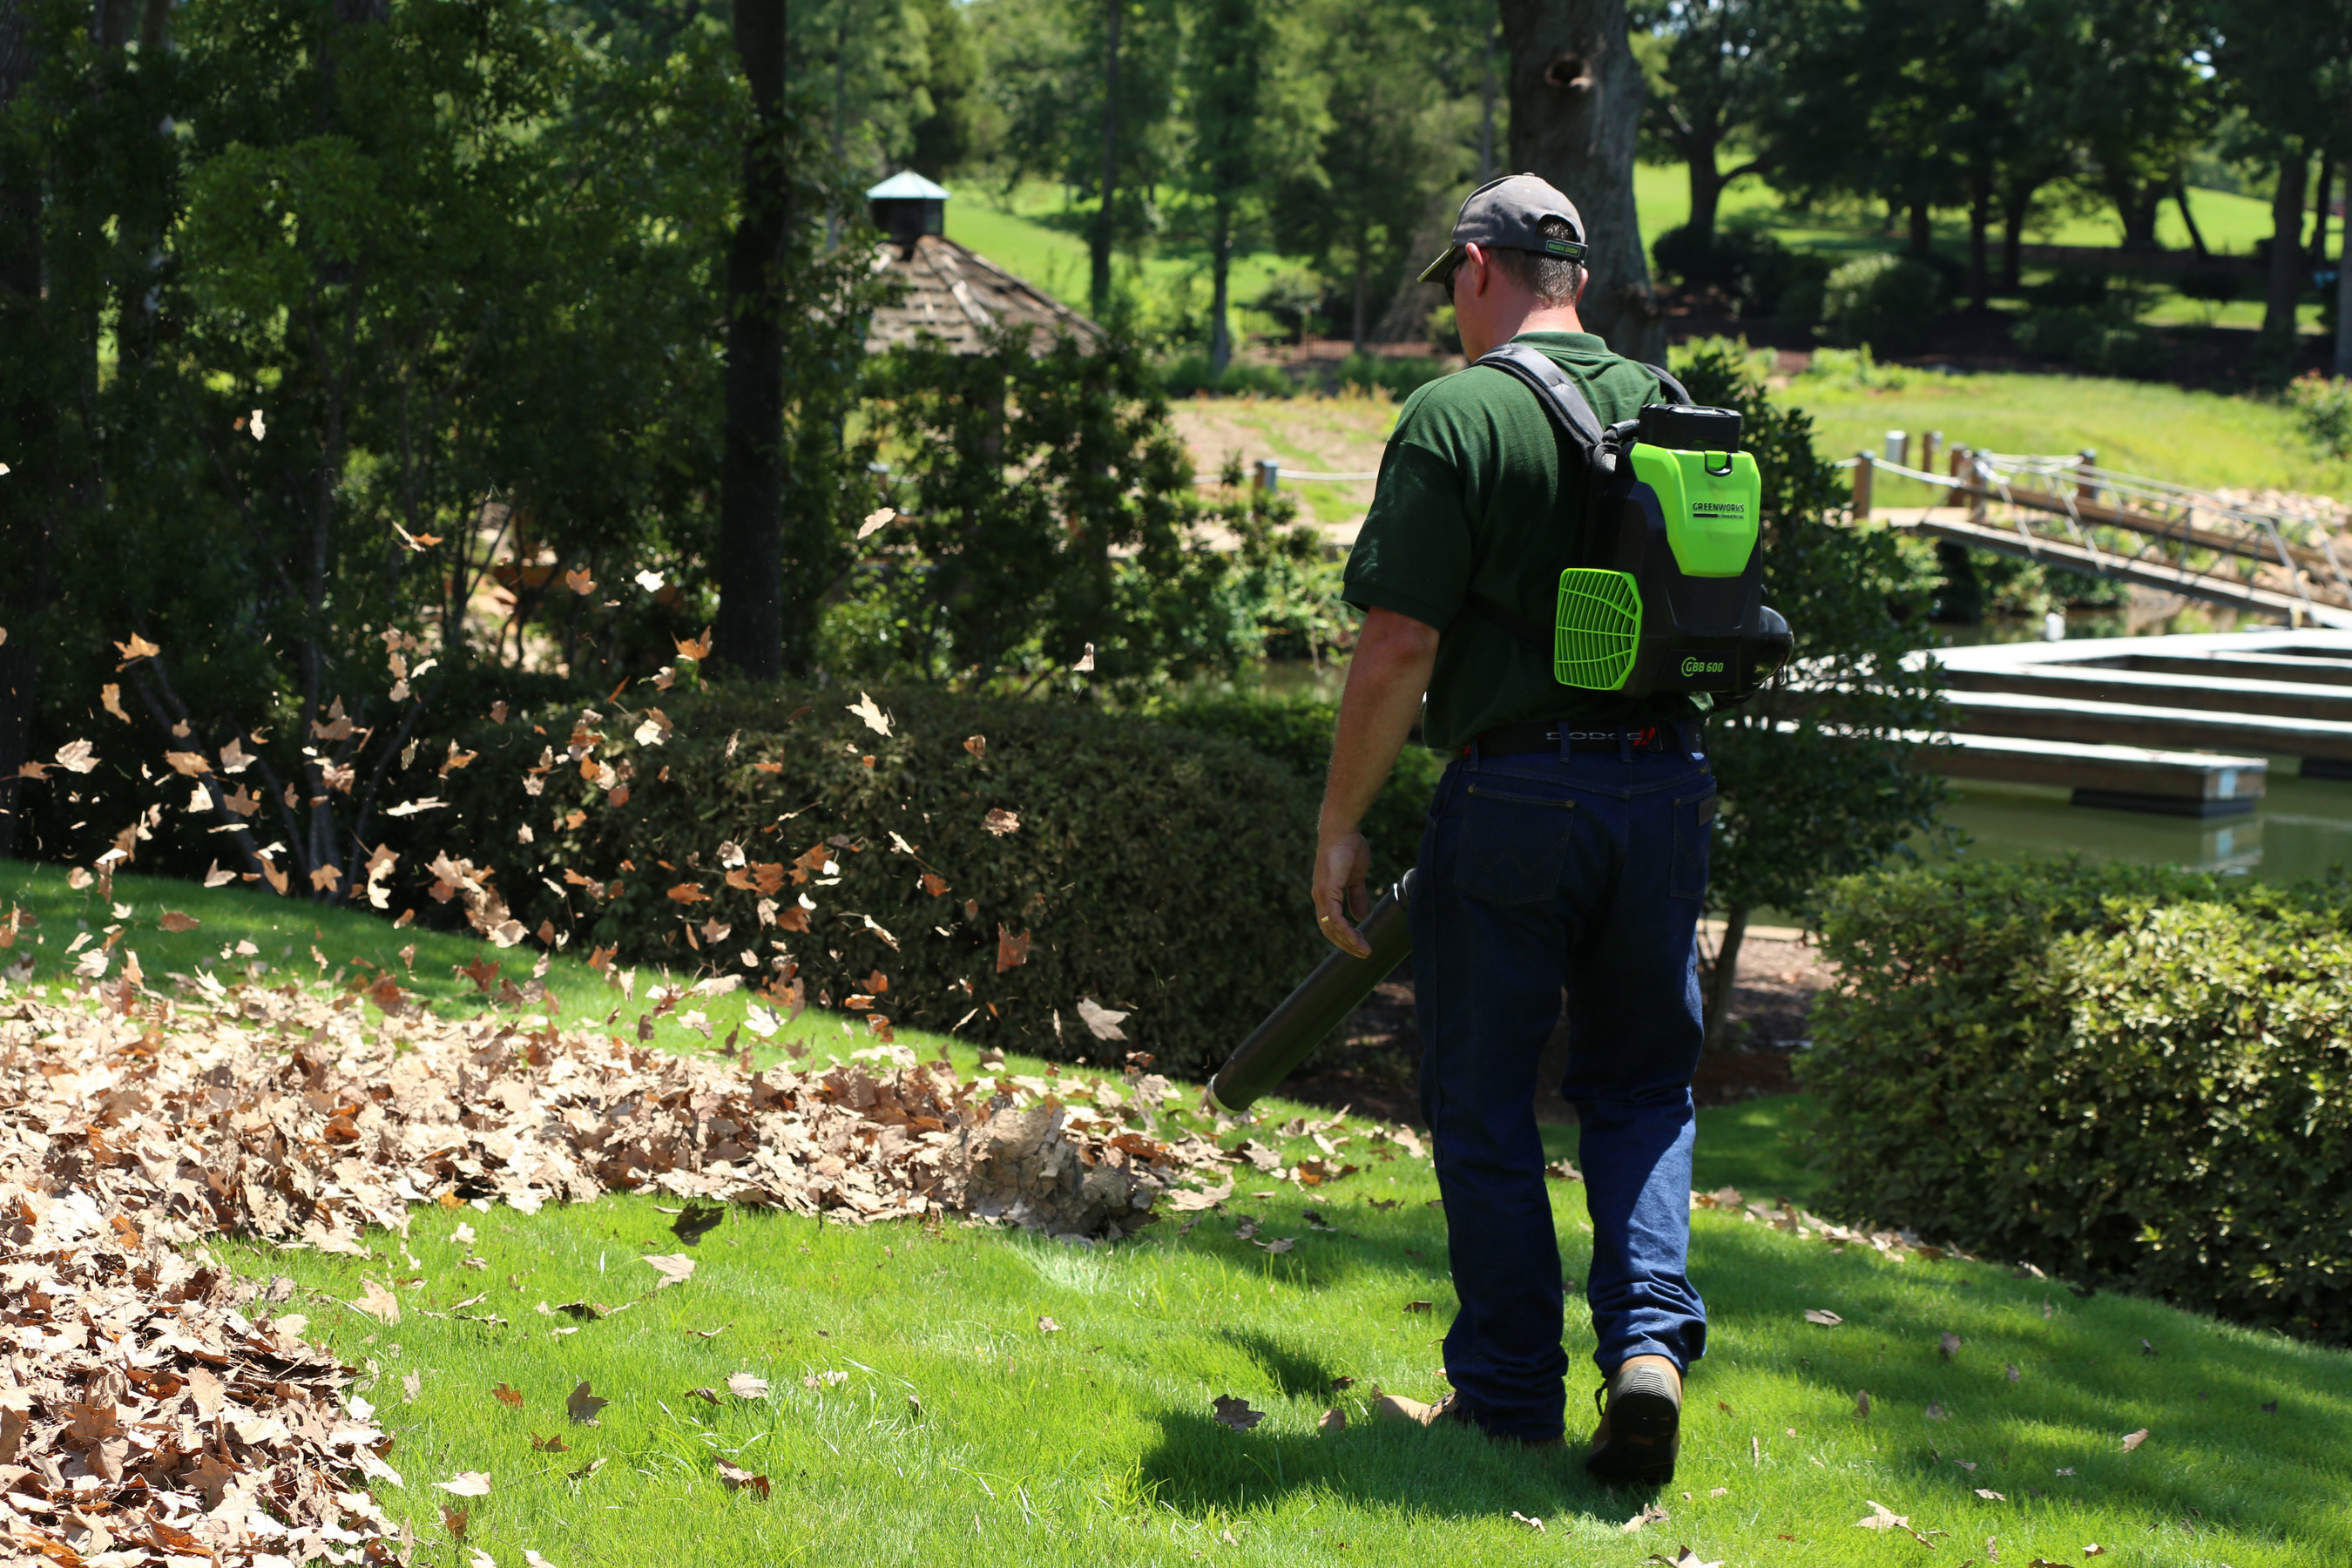 Greenworks Commercial launches dedicated line of battery-powered outdoor power equipment for landscaping professionals